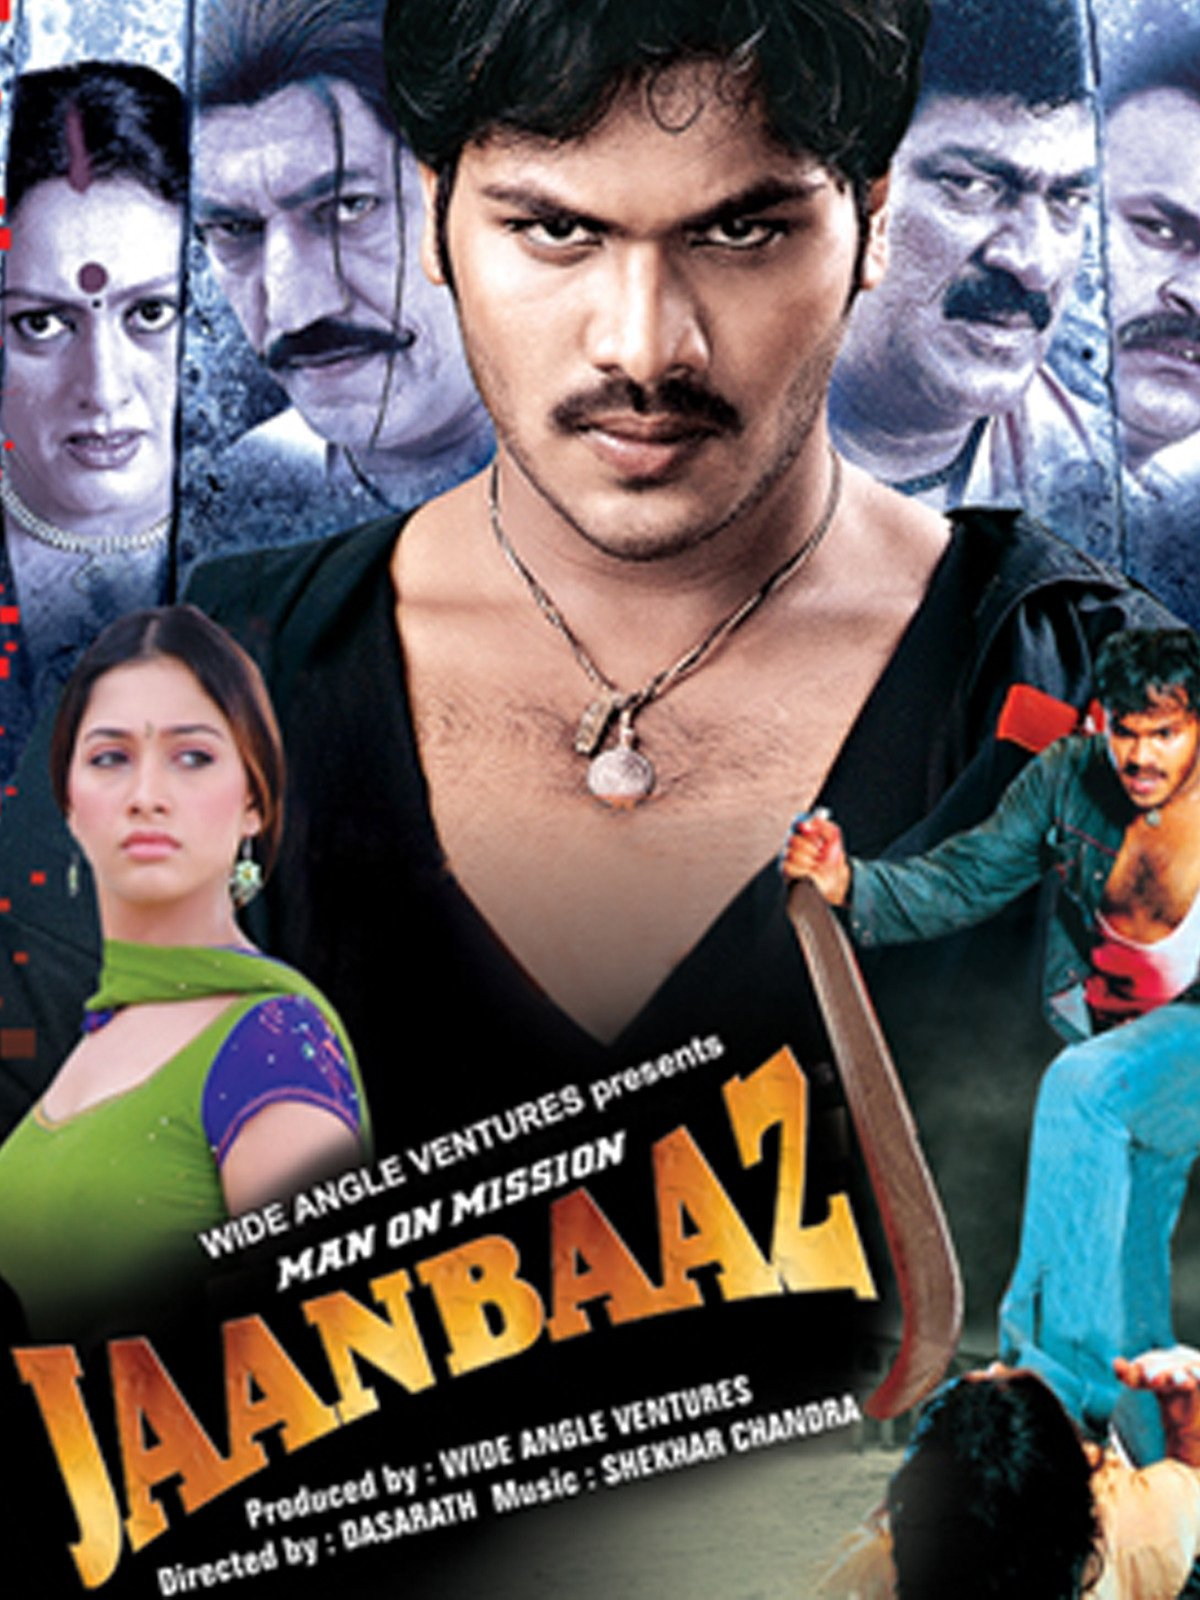 Man on Mission Jaanbaaz